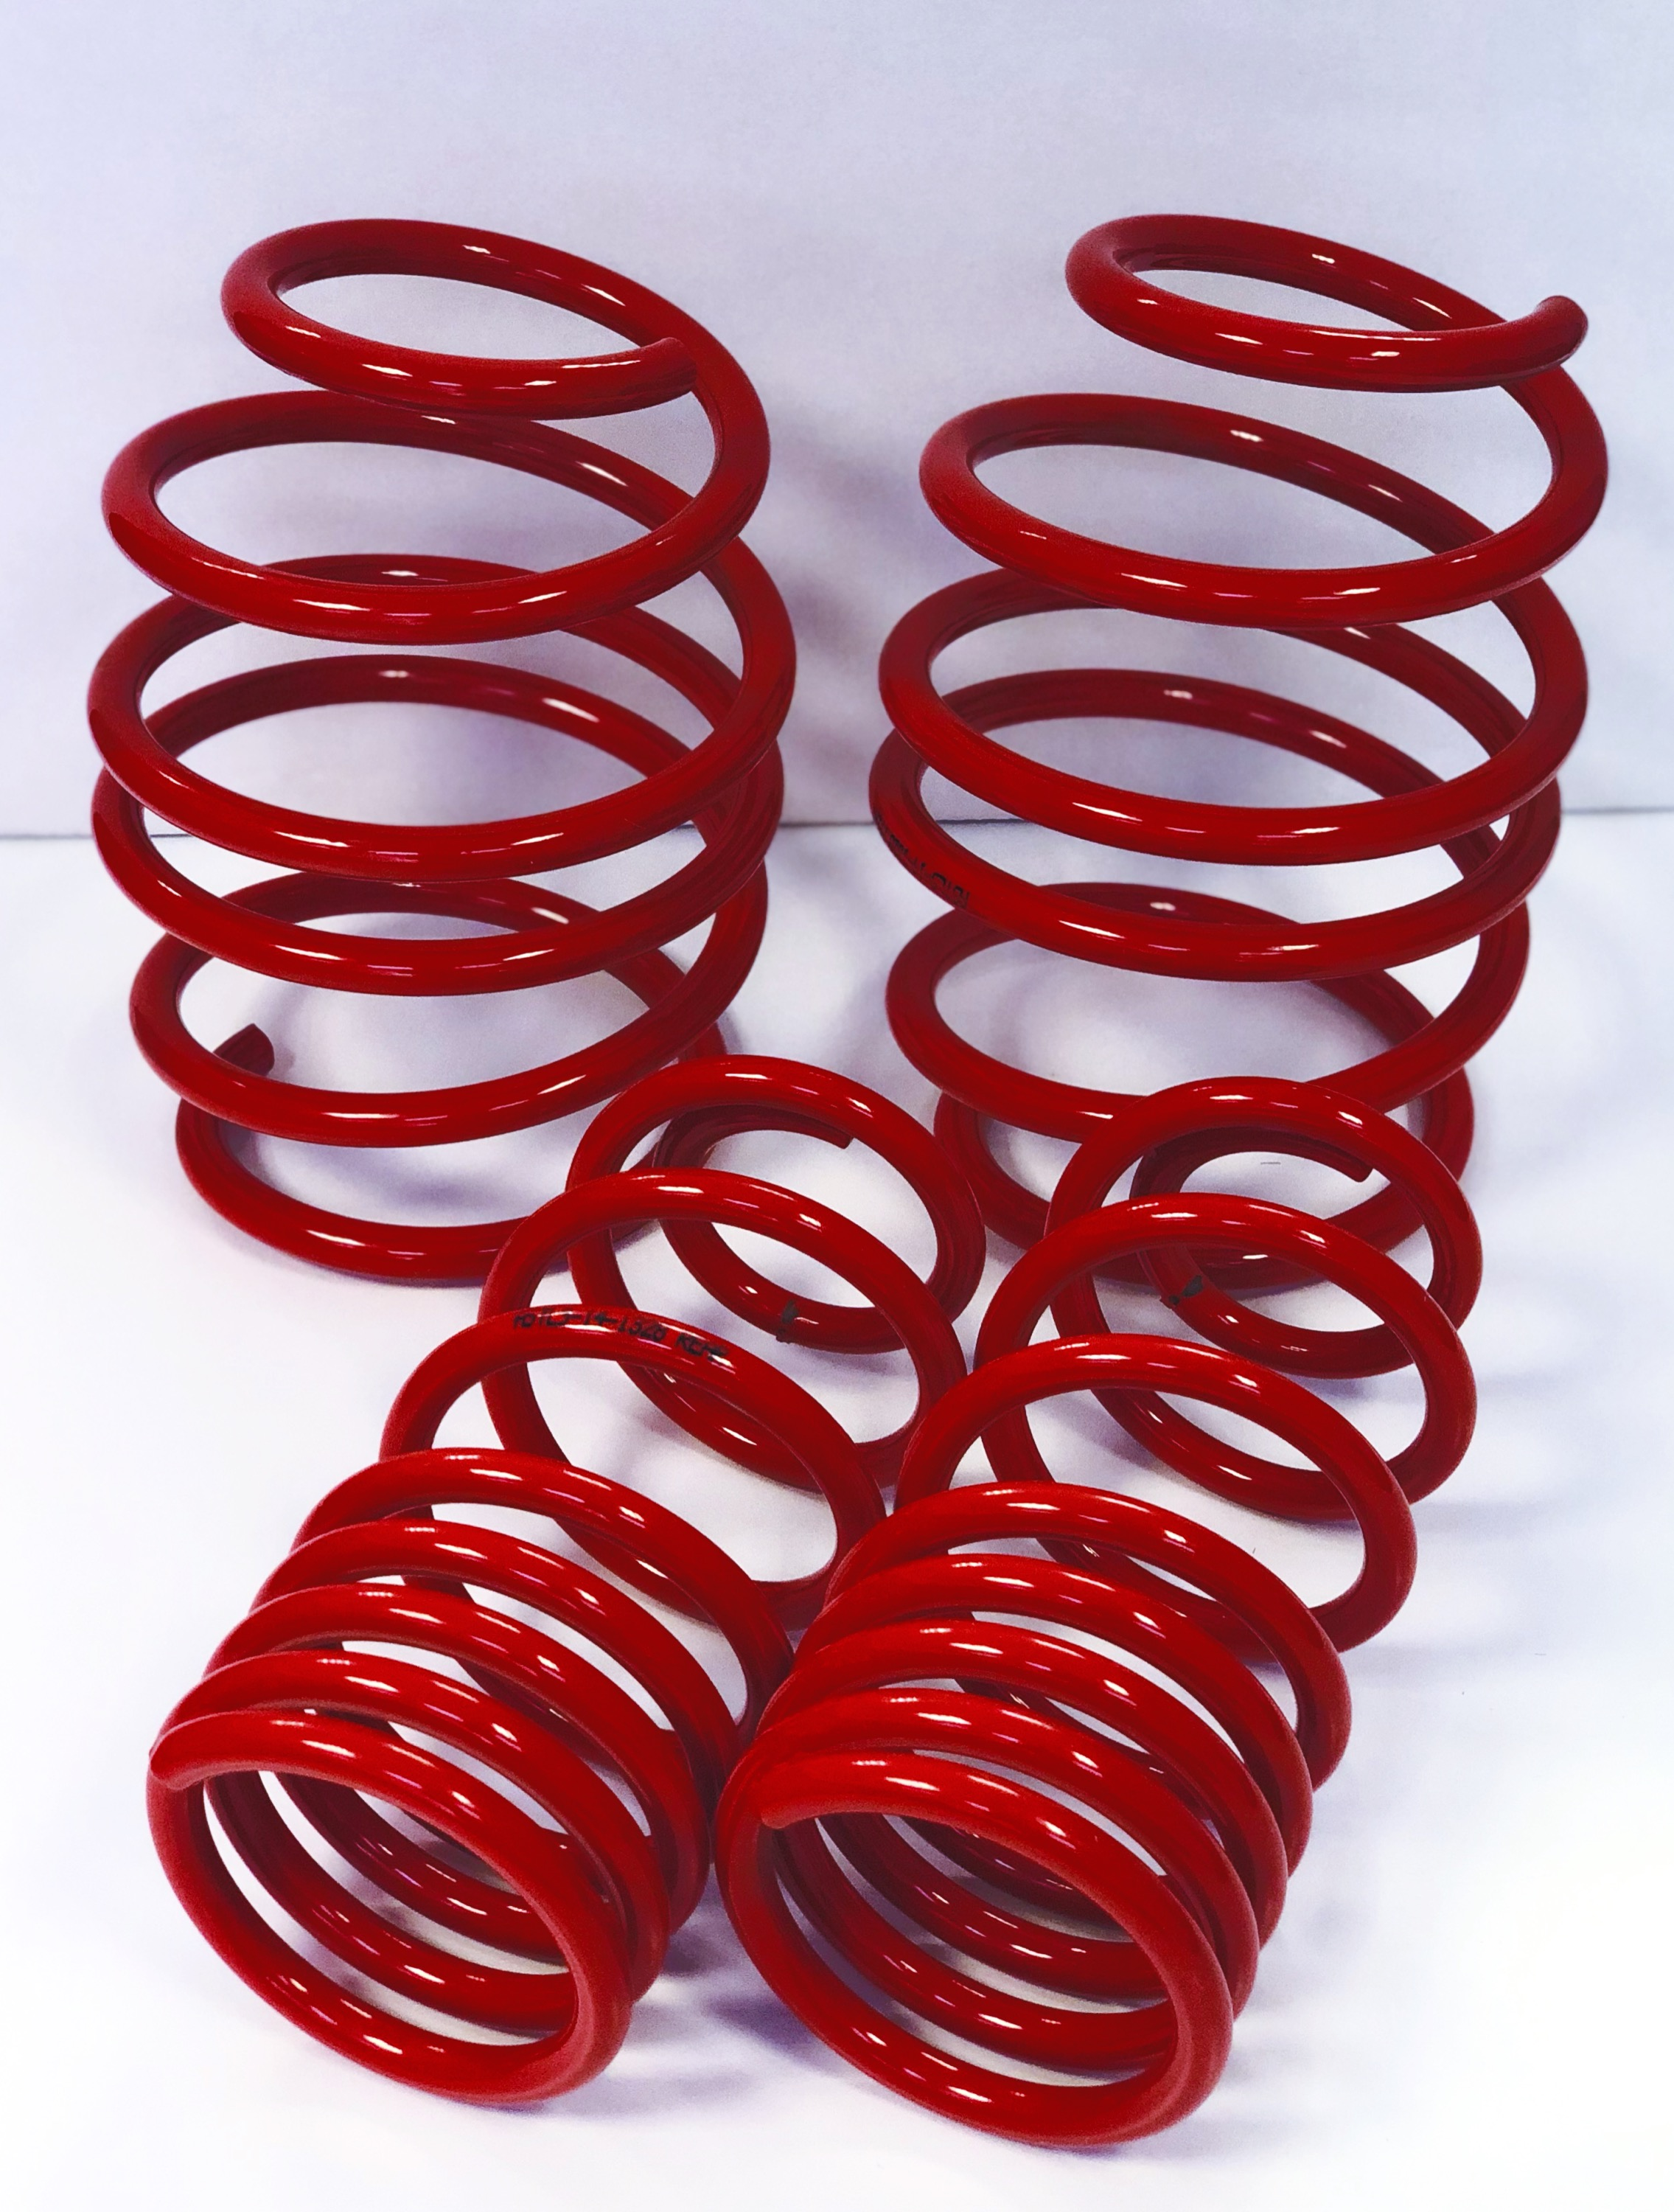 Seat IBIZA AST Suspension Lowering Springs 30MM